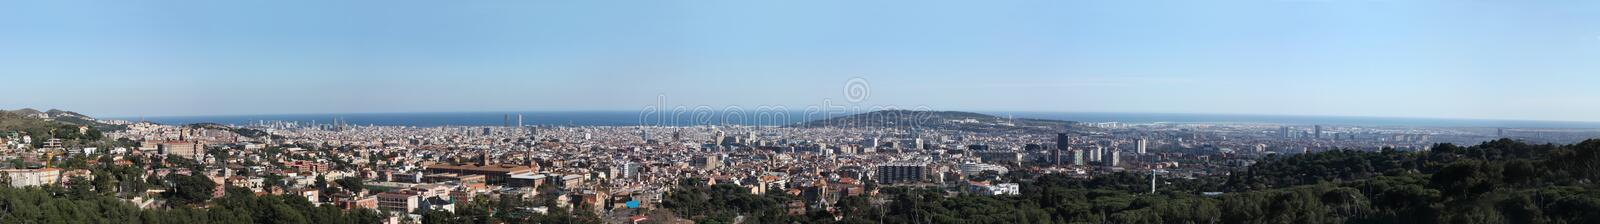 Great overview of Barcelona royalty free stock photography